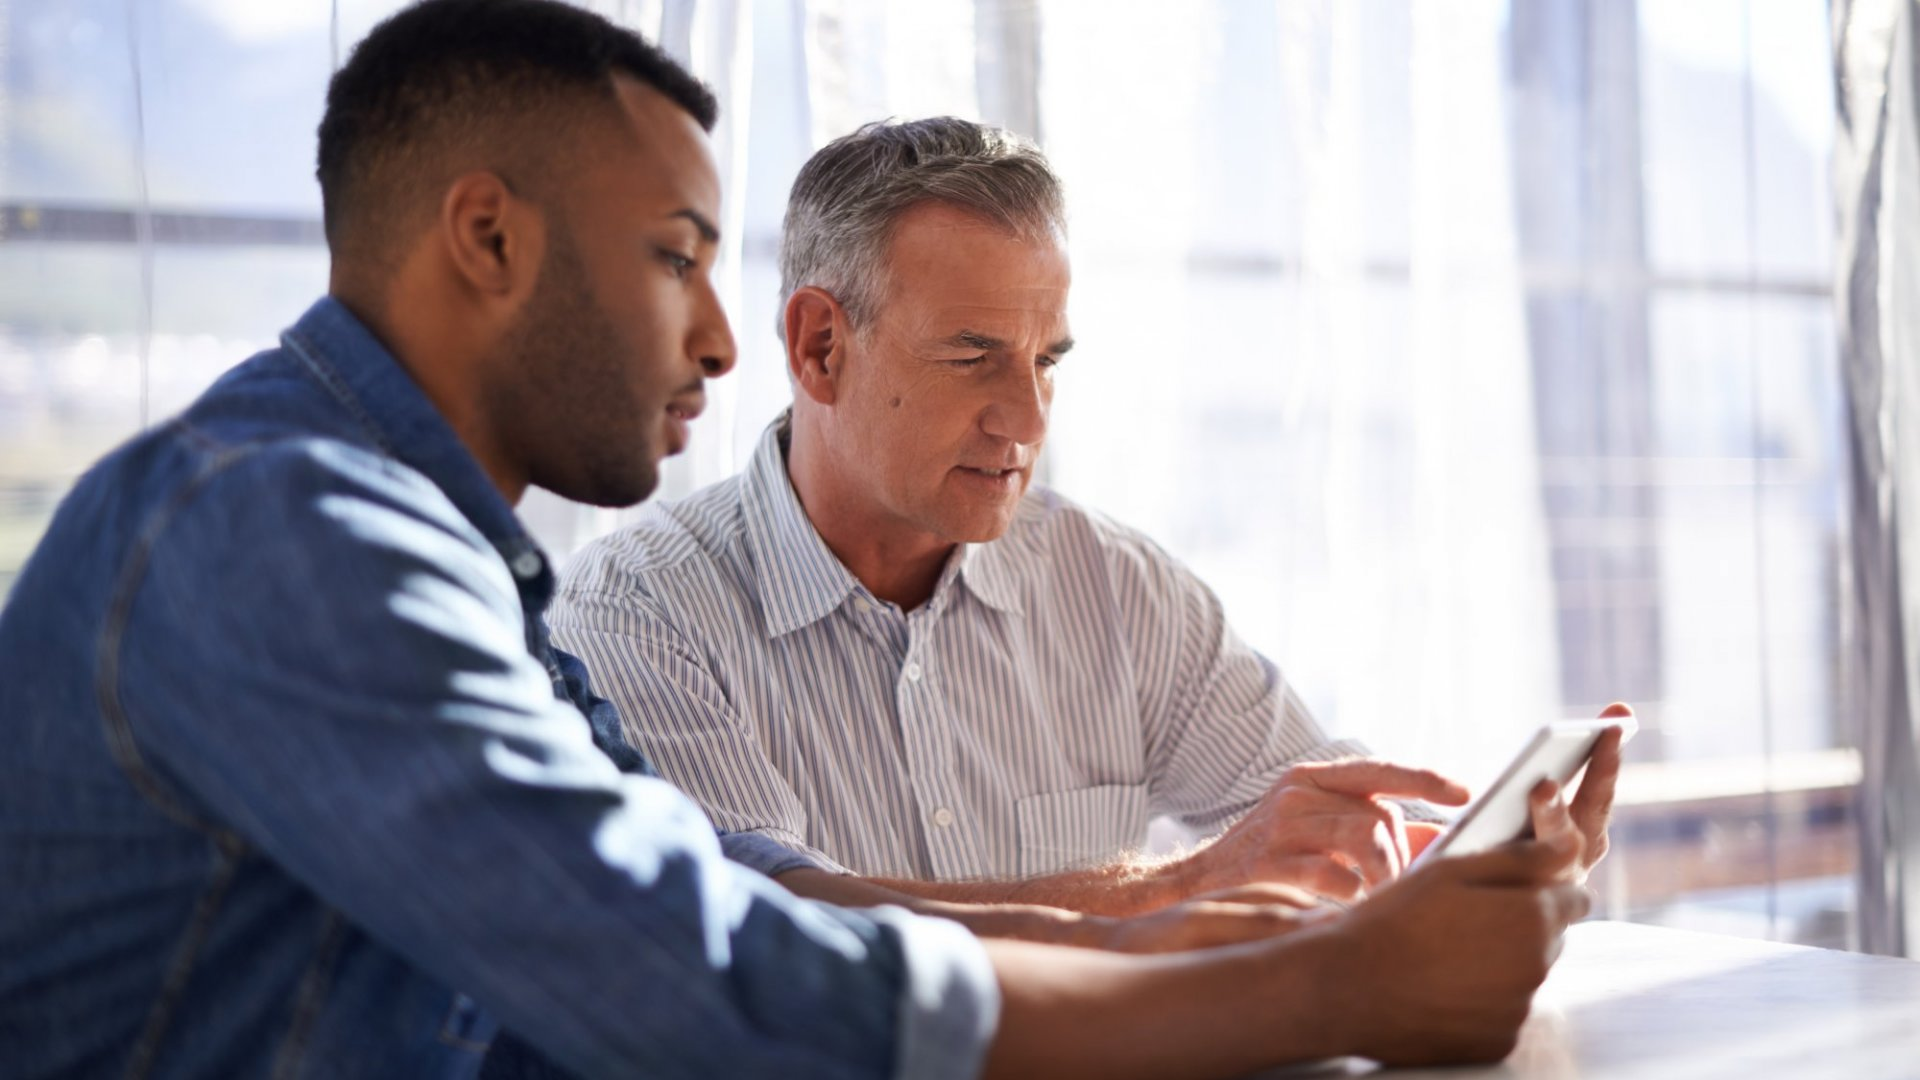 Good mentors do more than just motivate, they help drive results and business growth.